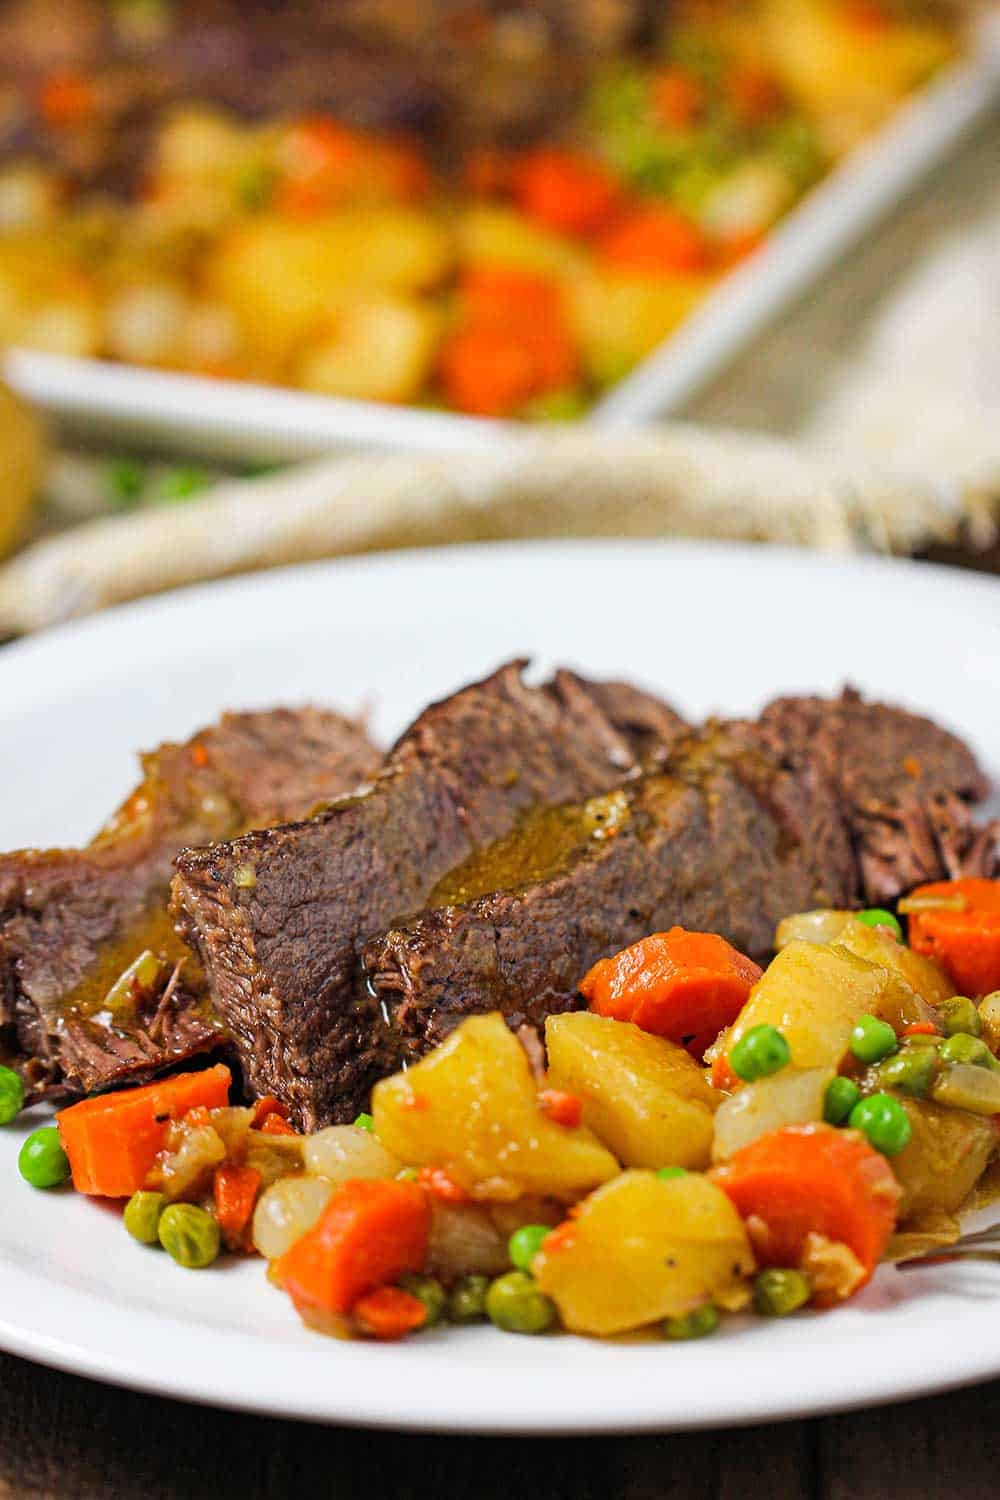 A plate of sliced pot roast next to cooked potatoes, carrots, and peas.